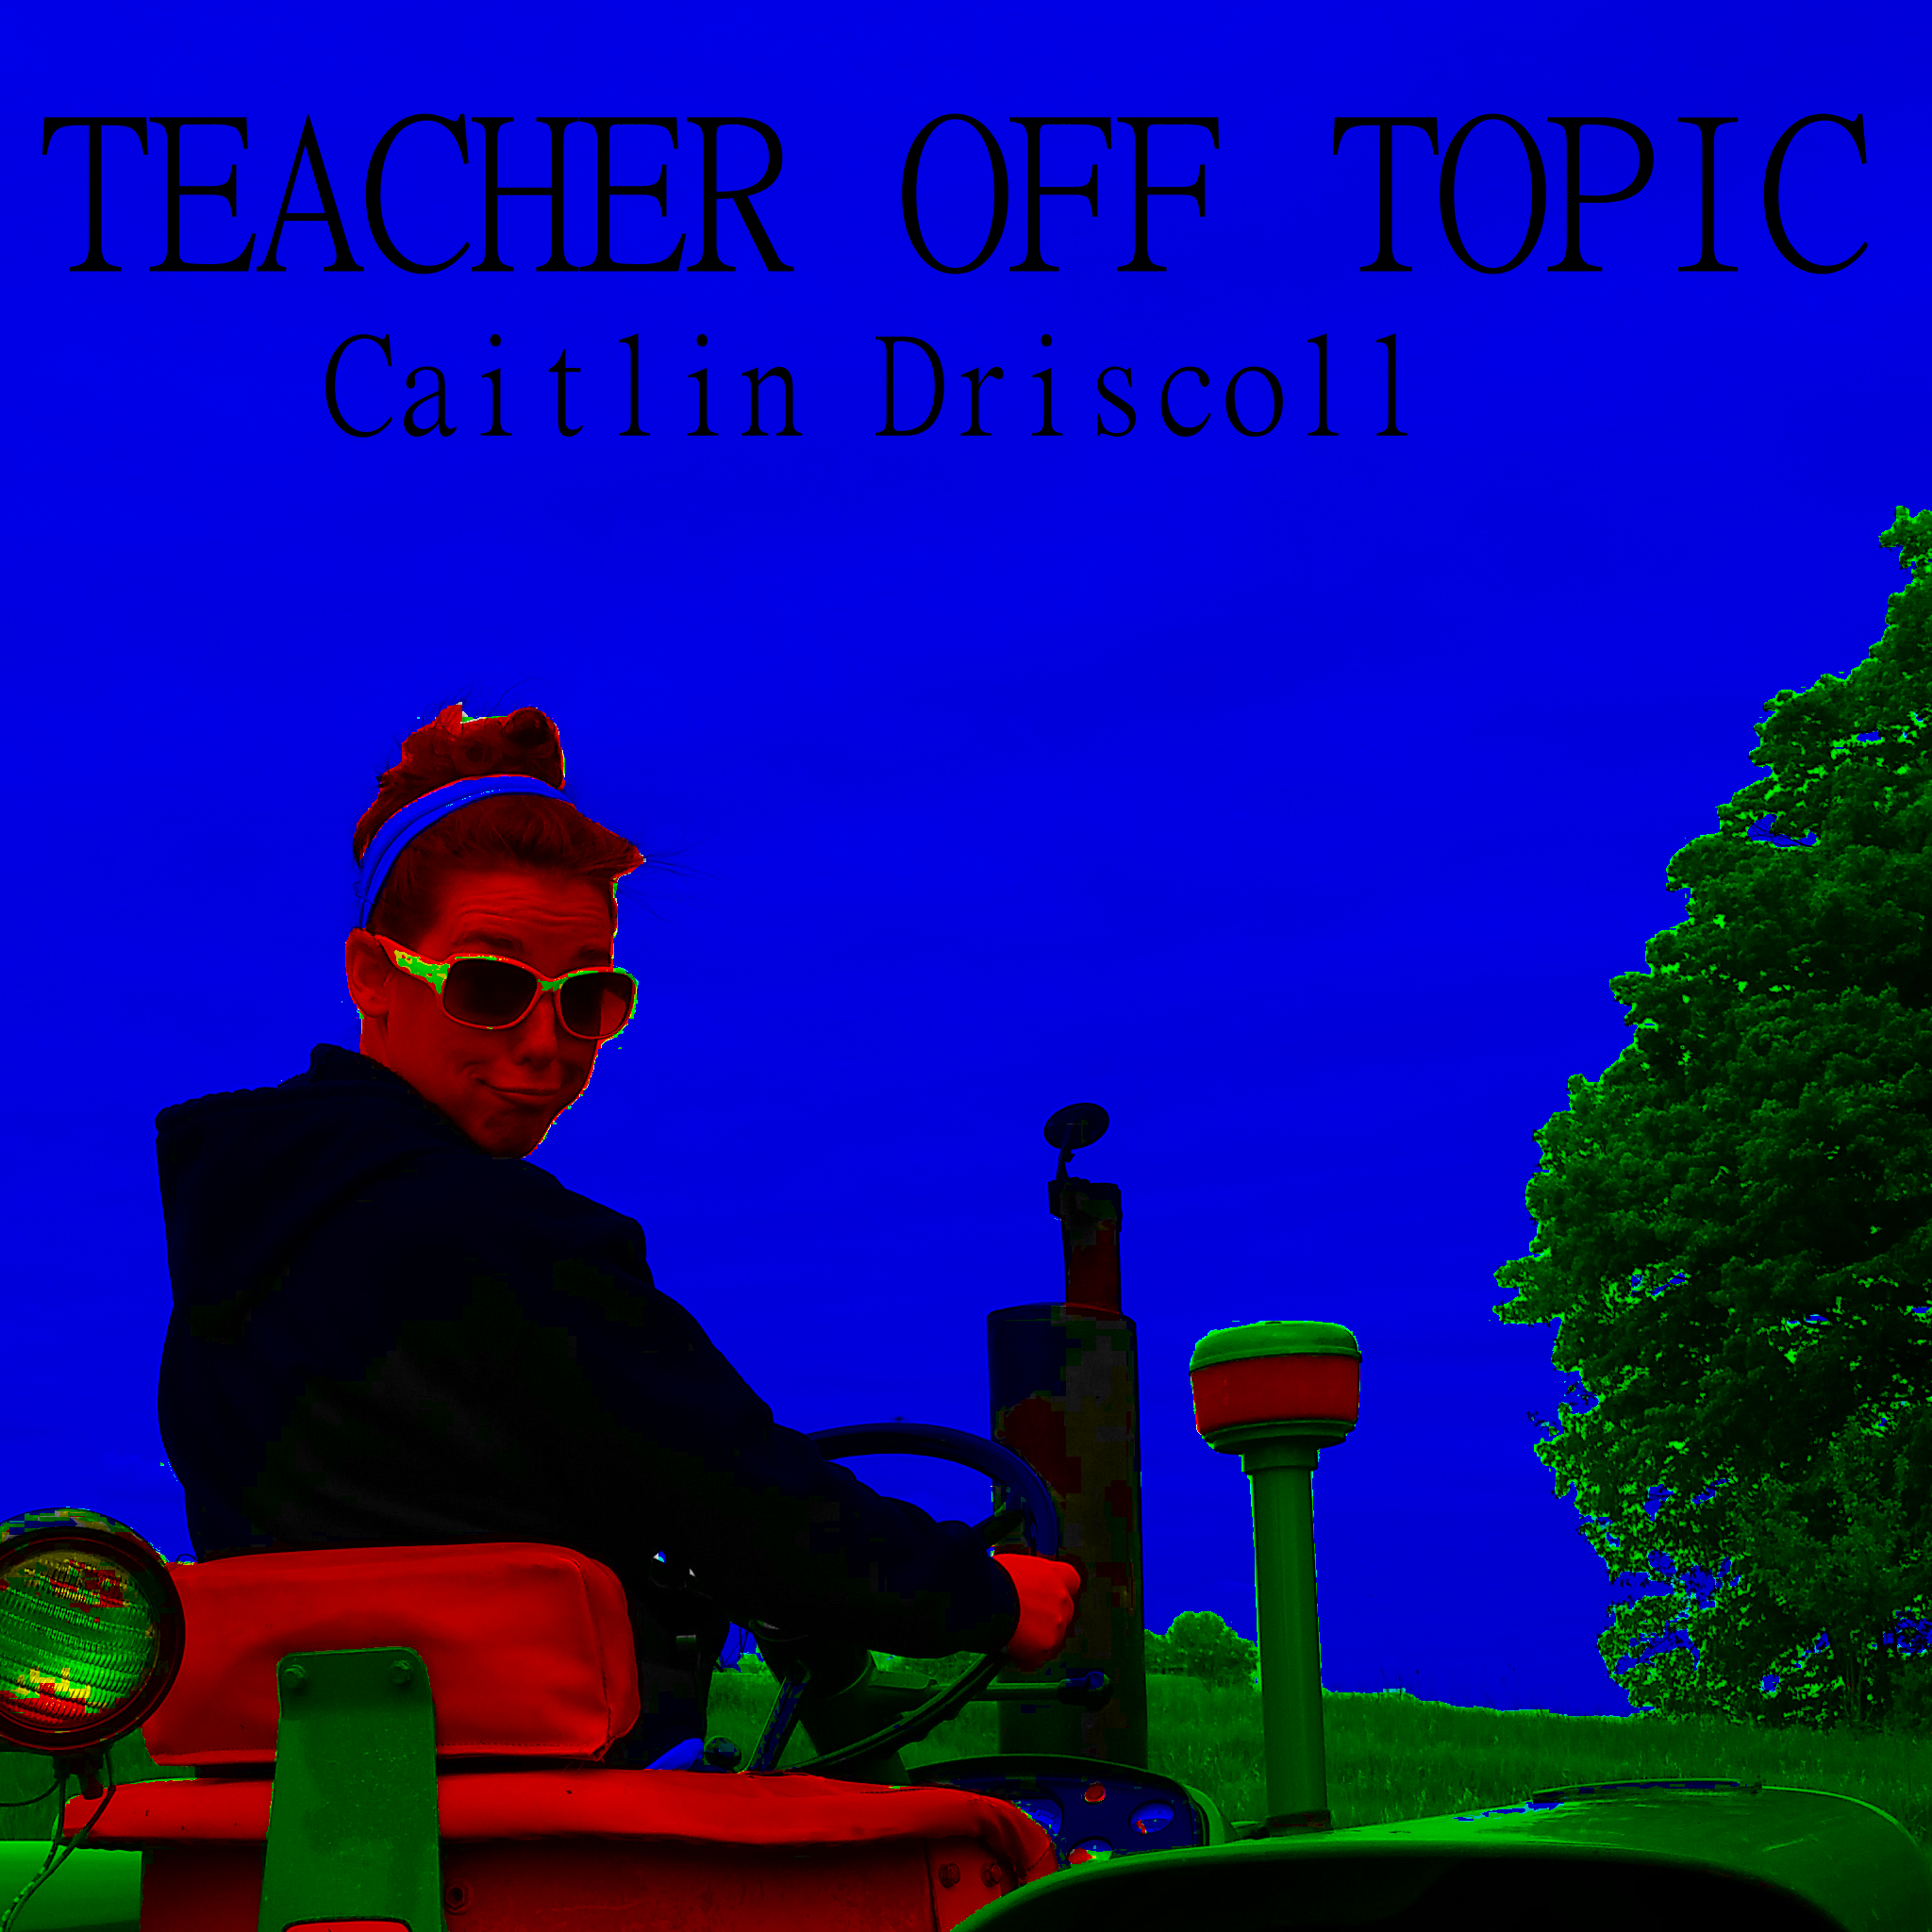 Teacher Off Topic